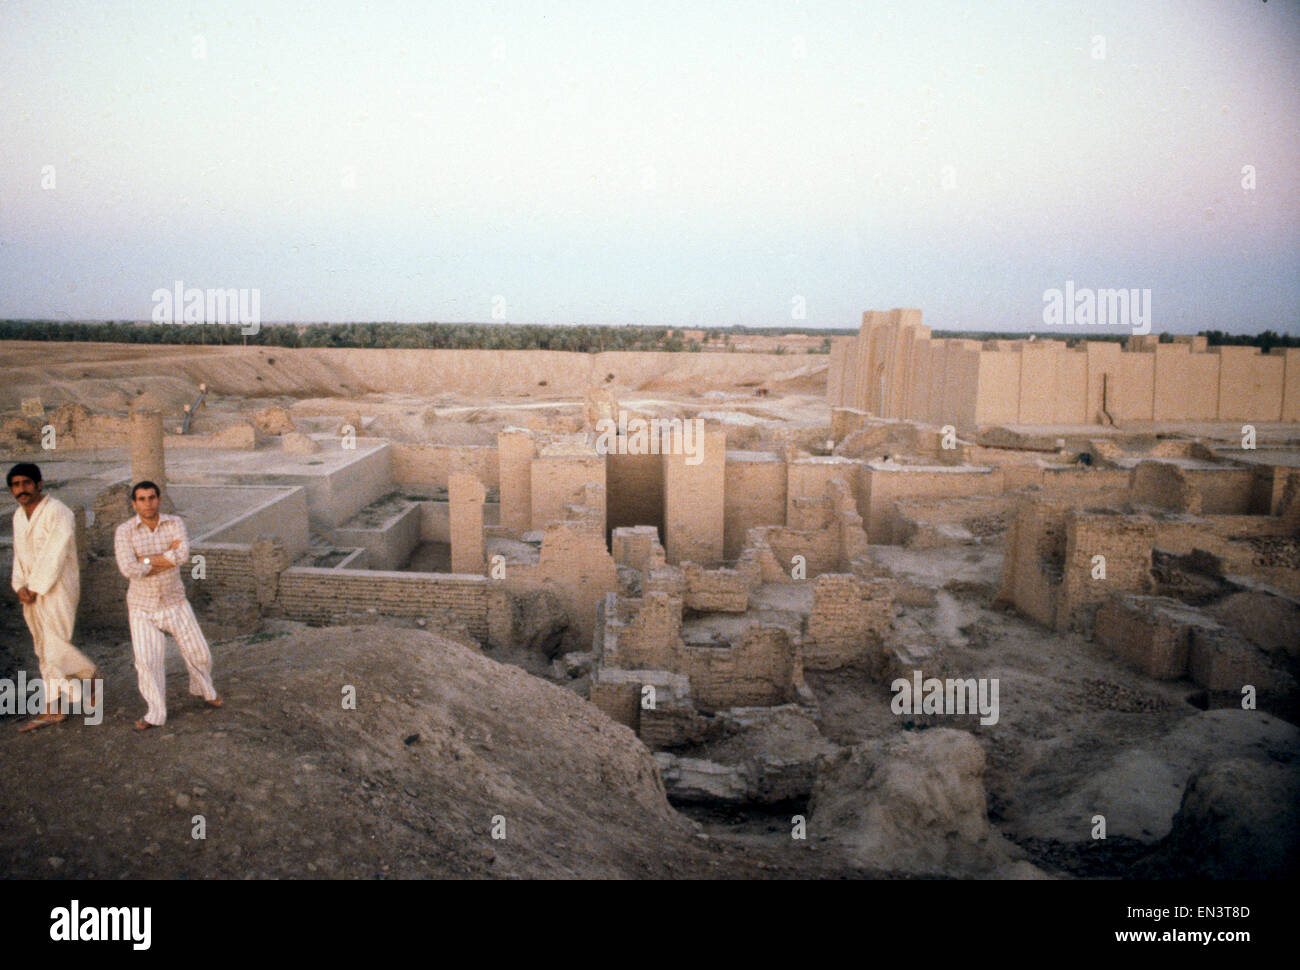 Two men on the walls of the ancient Sumerian city of Babylon in Iraq Stock Photo